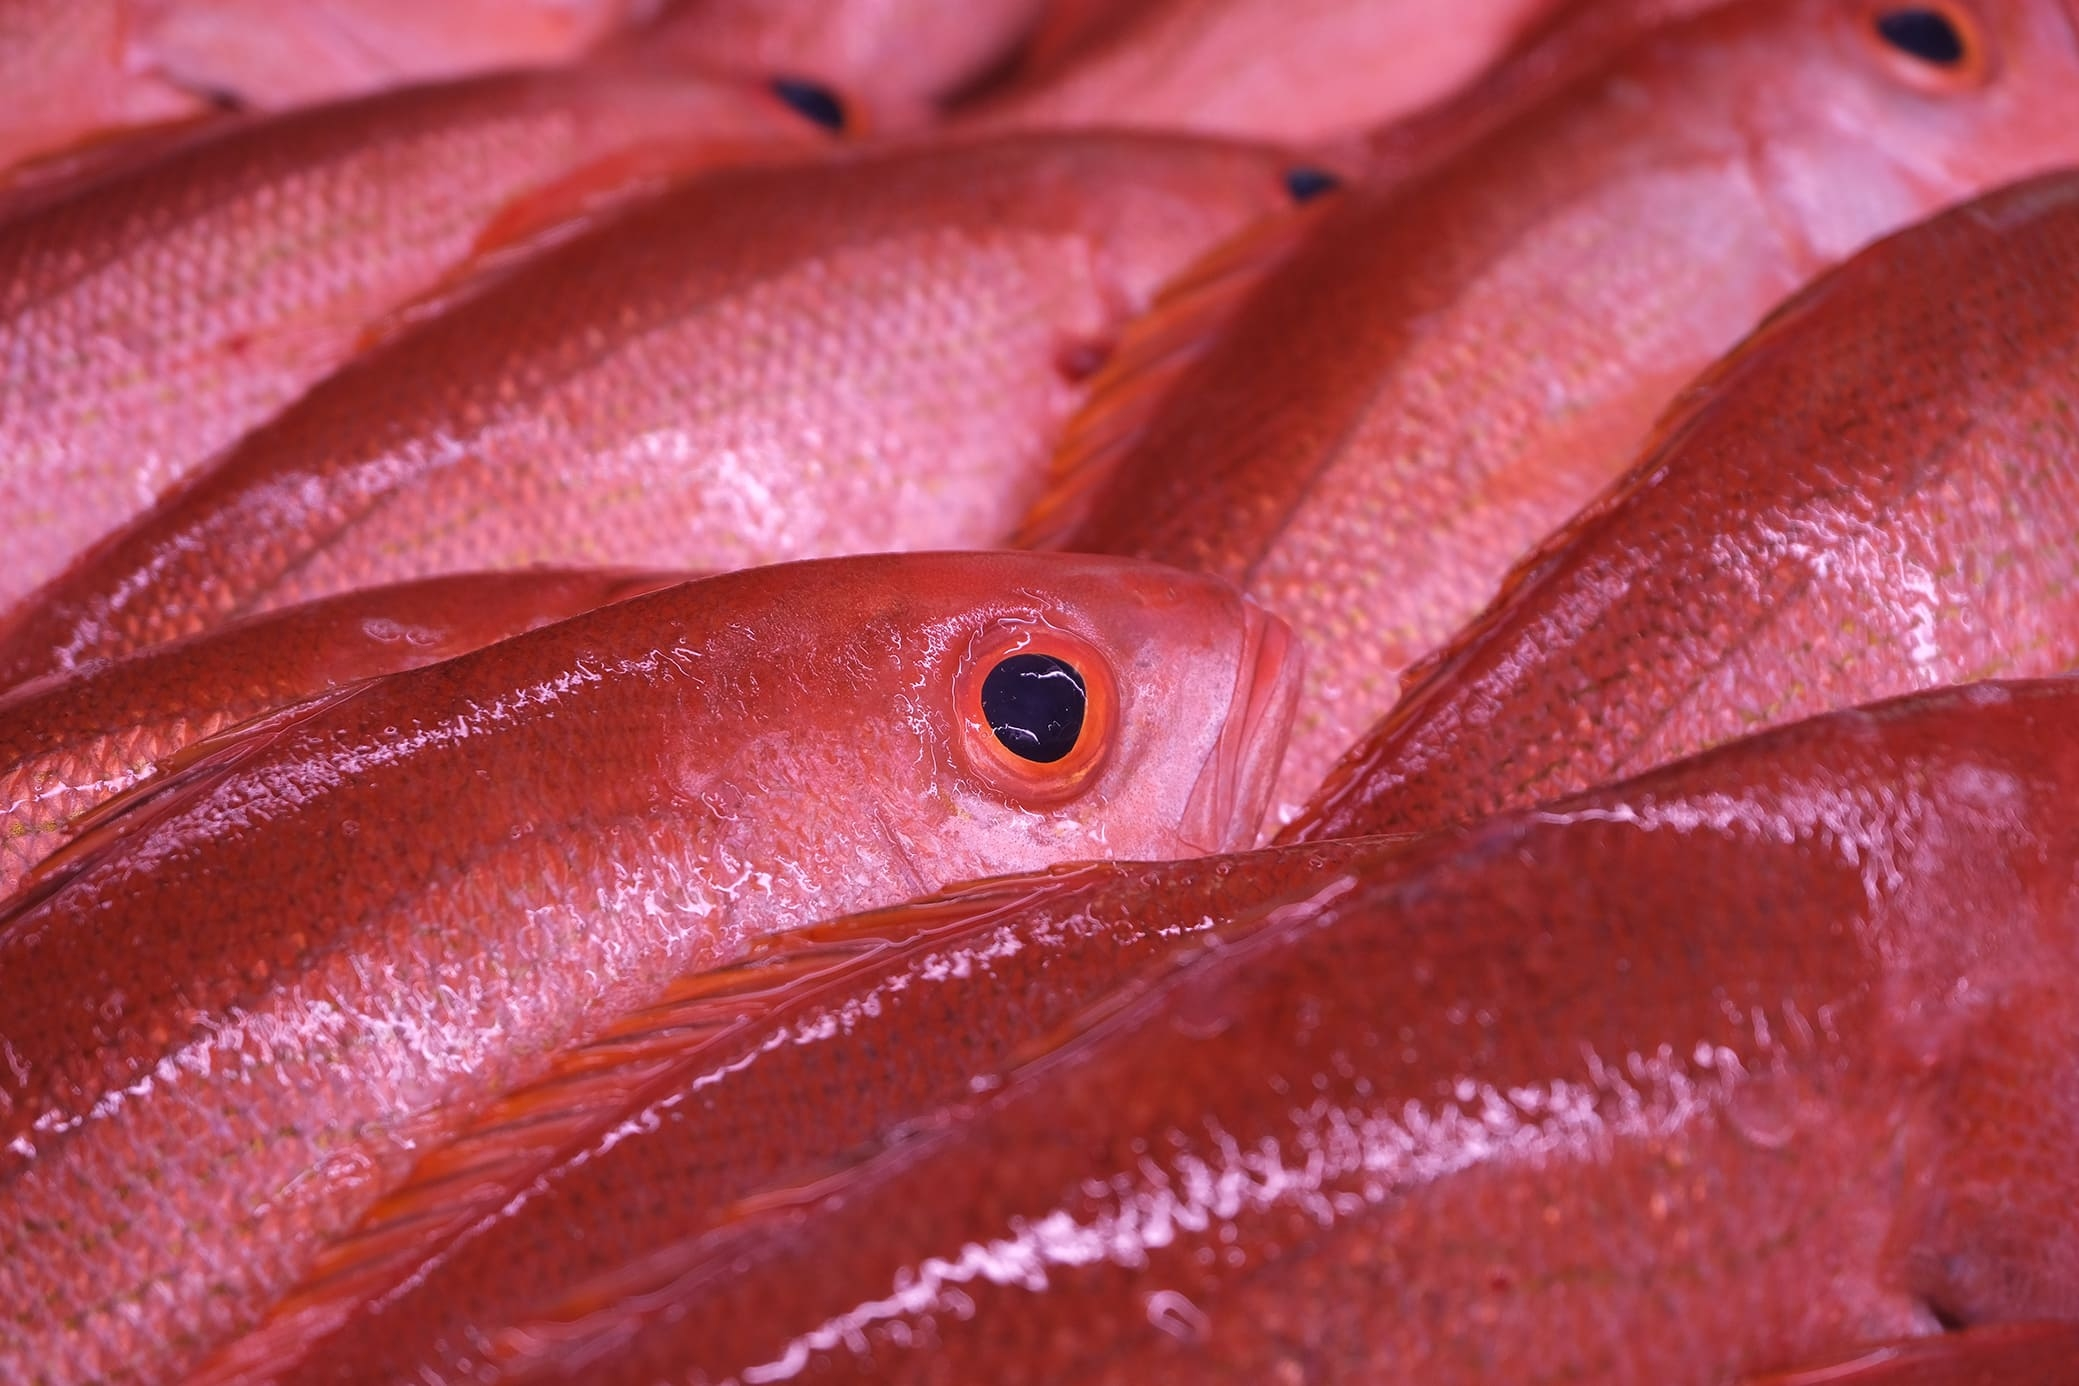 Fresh From Florida vermilion snapper caught off Jacksonville by a local fisherman